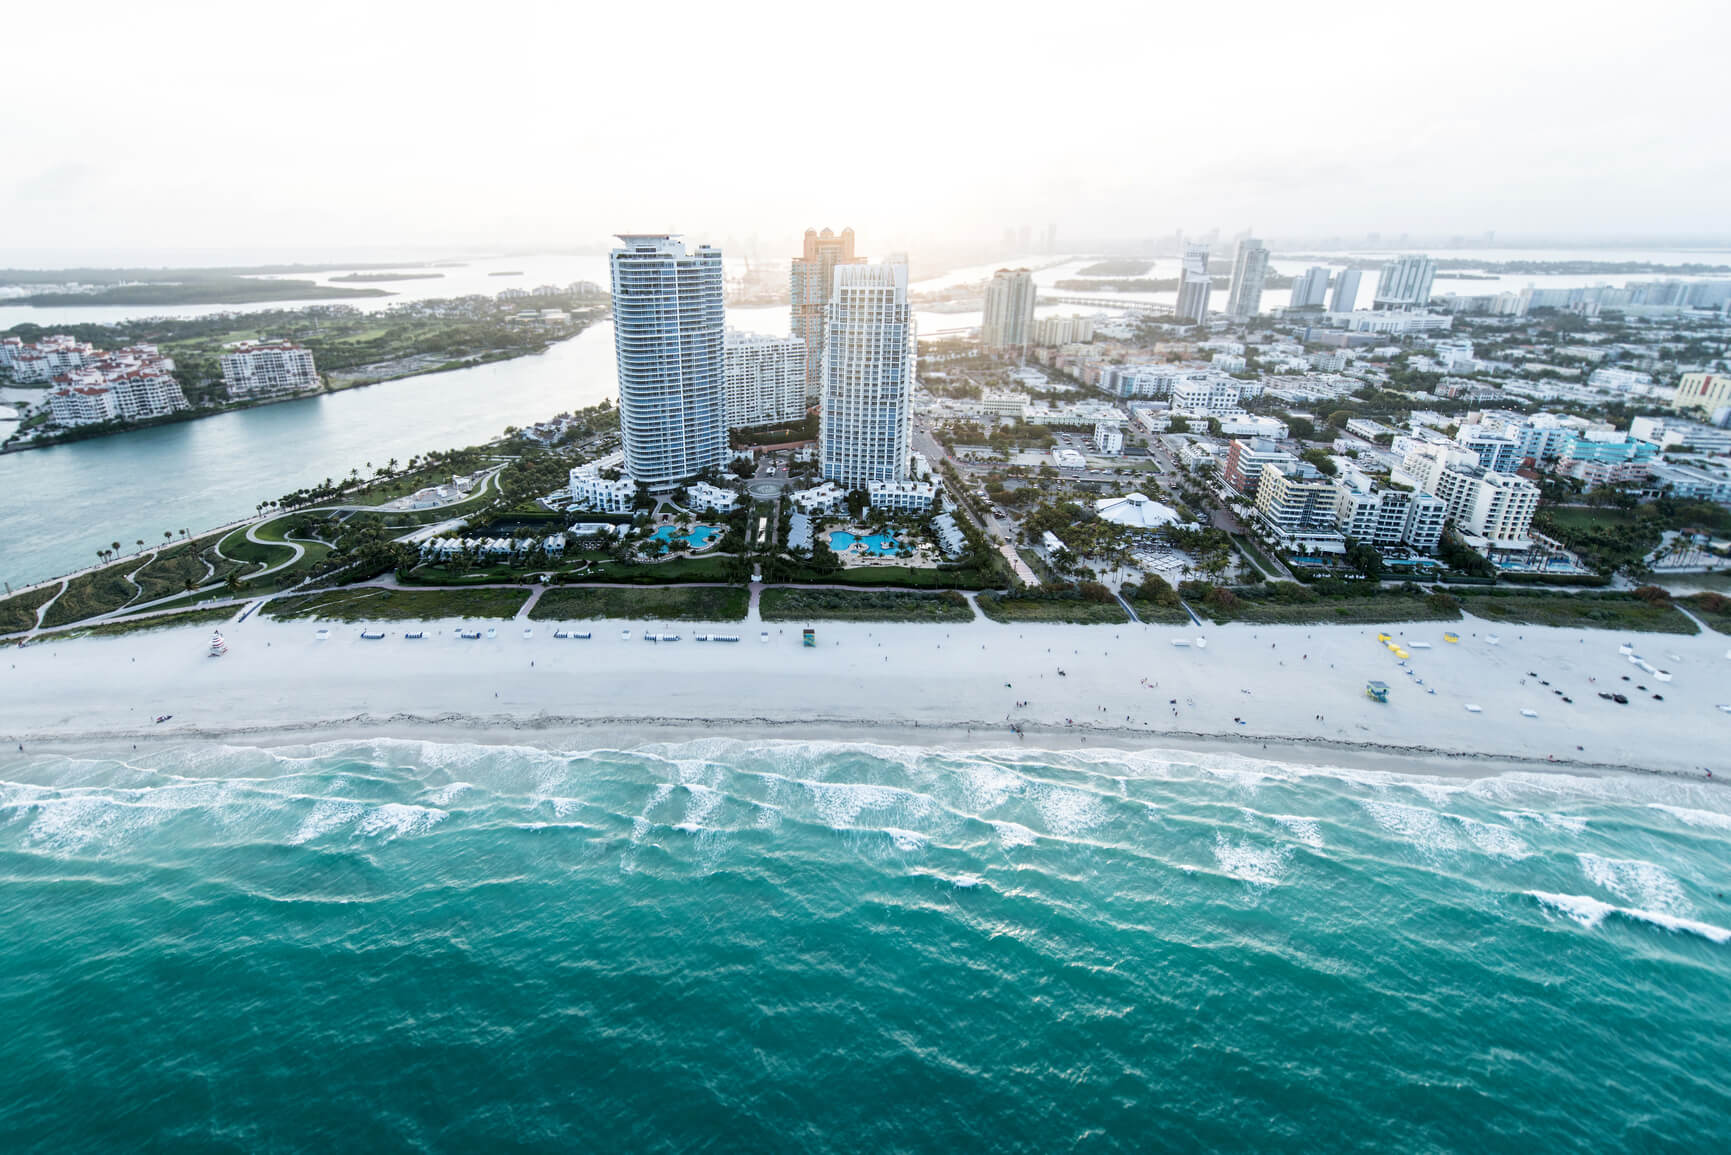 Non-stop from New York to Miami (& vice versa) for only $71 roundtrip (Sep-Feb dates)